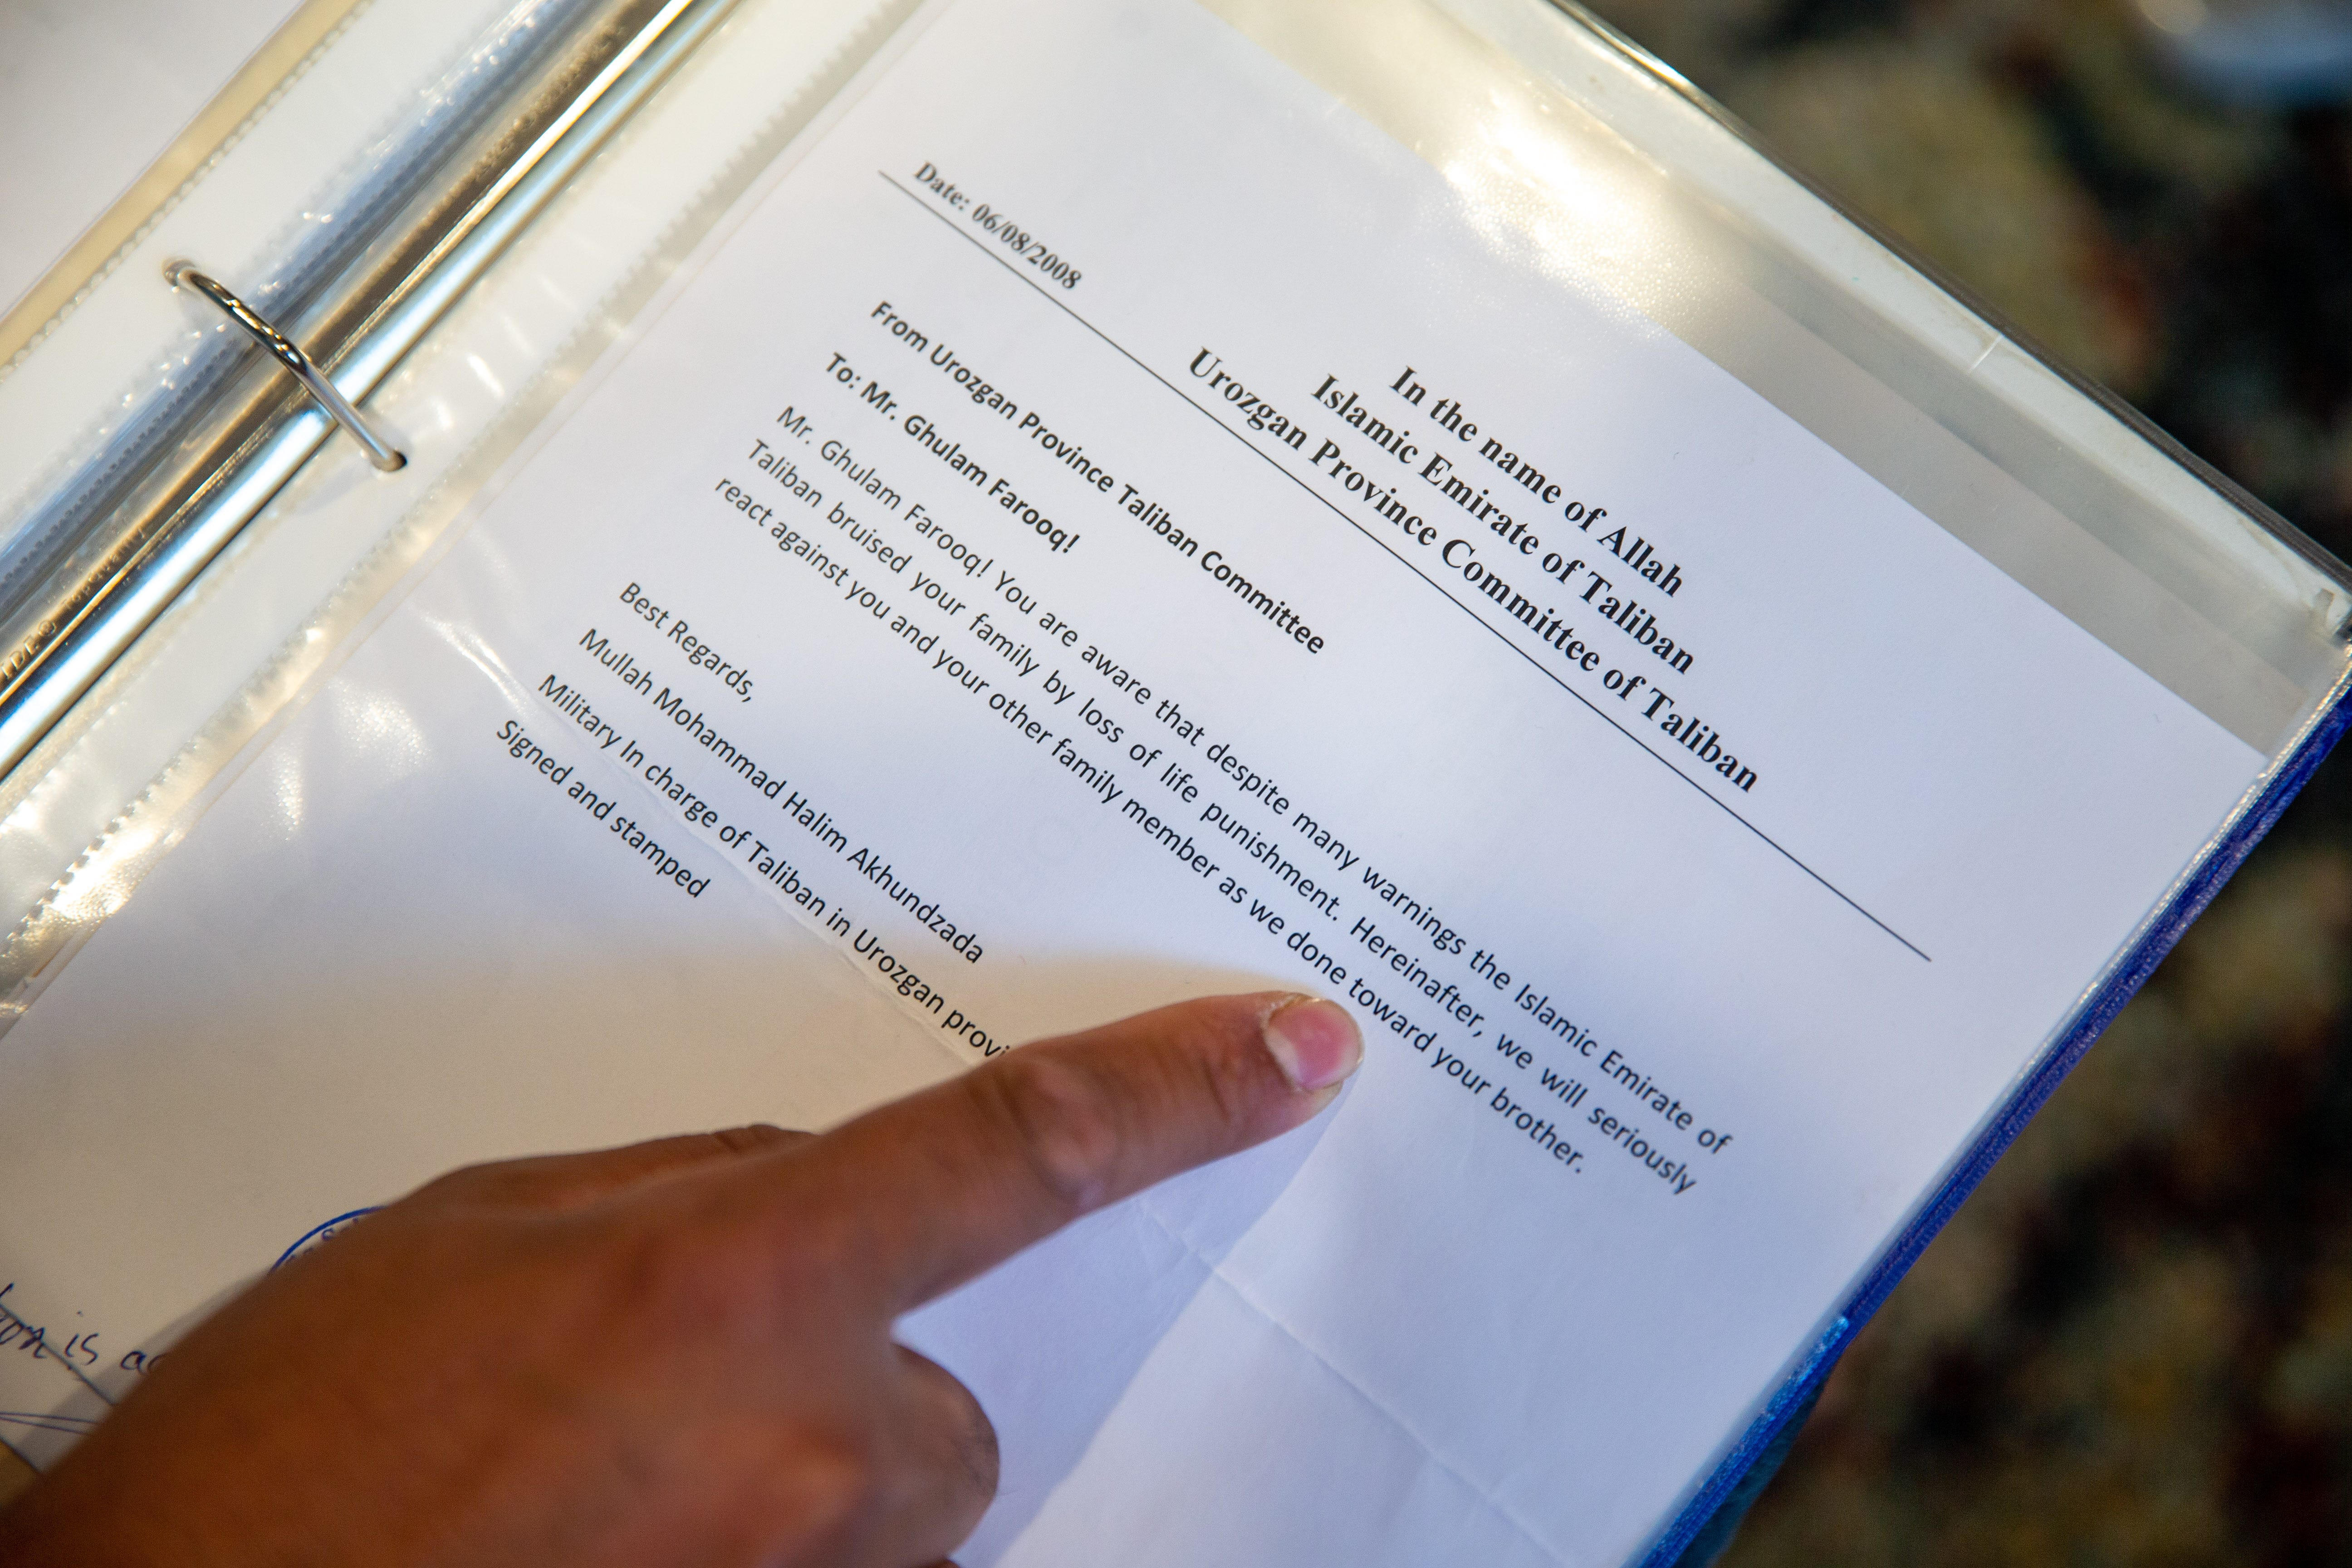 Zalmay Niazy looks over a binder with threat letters he received from the Taliban while he was working for the U.S. government.